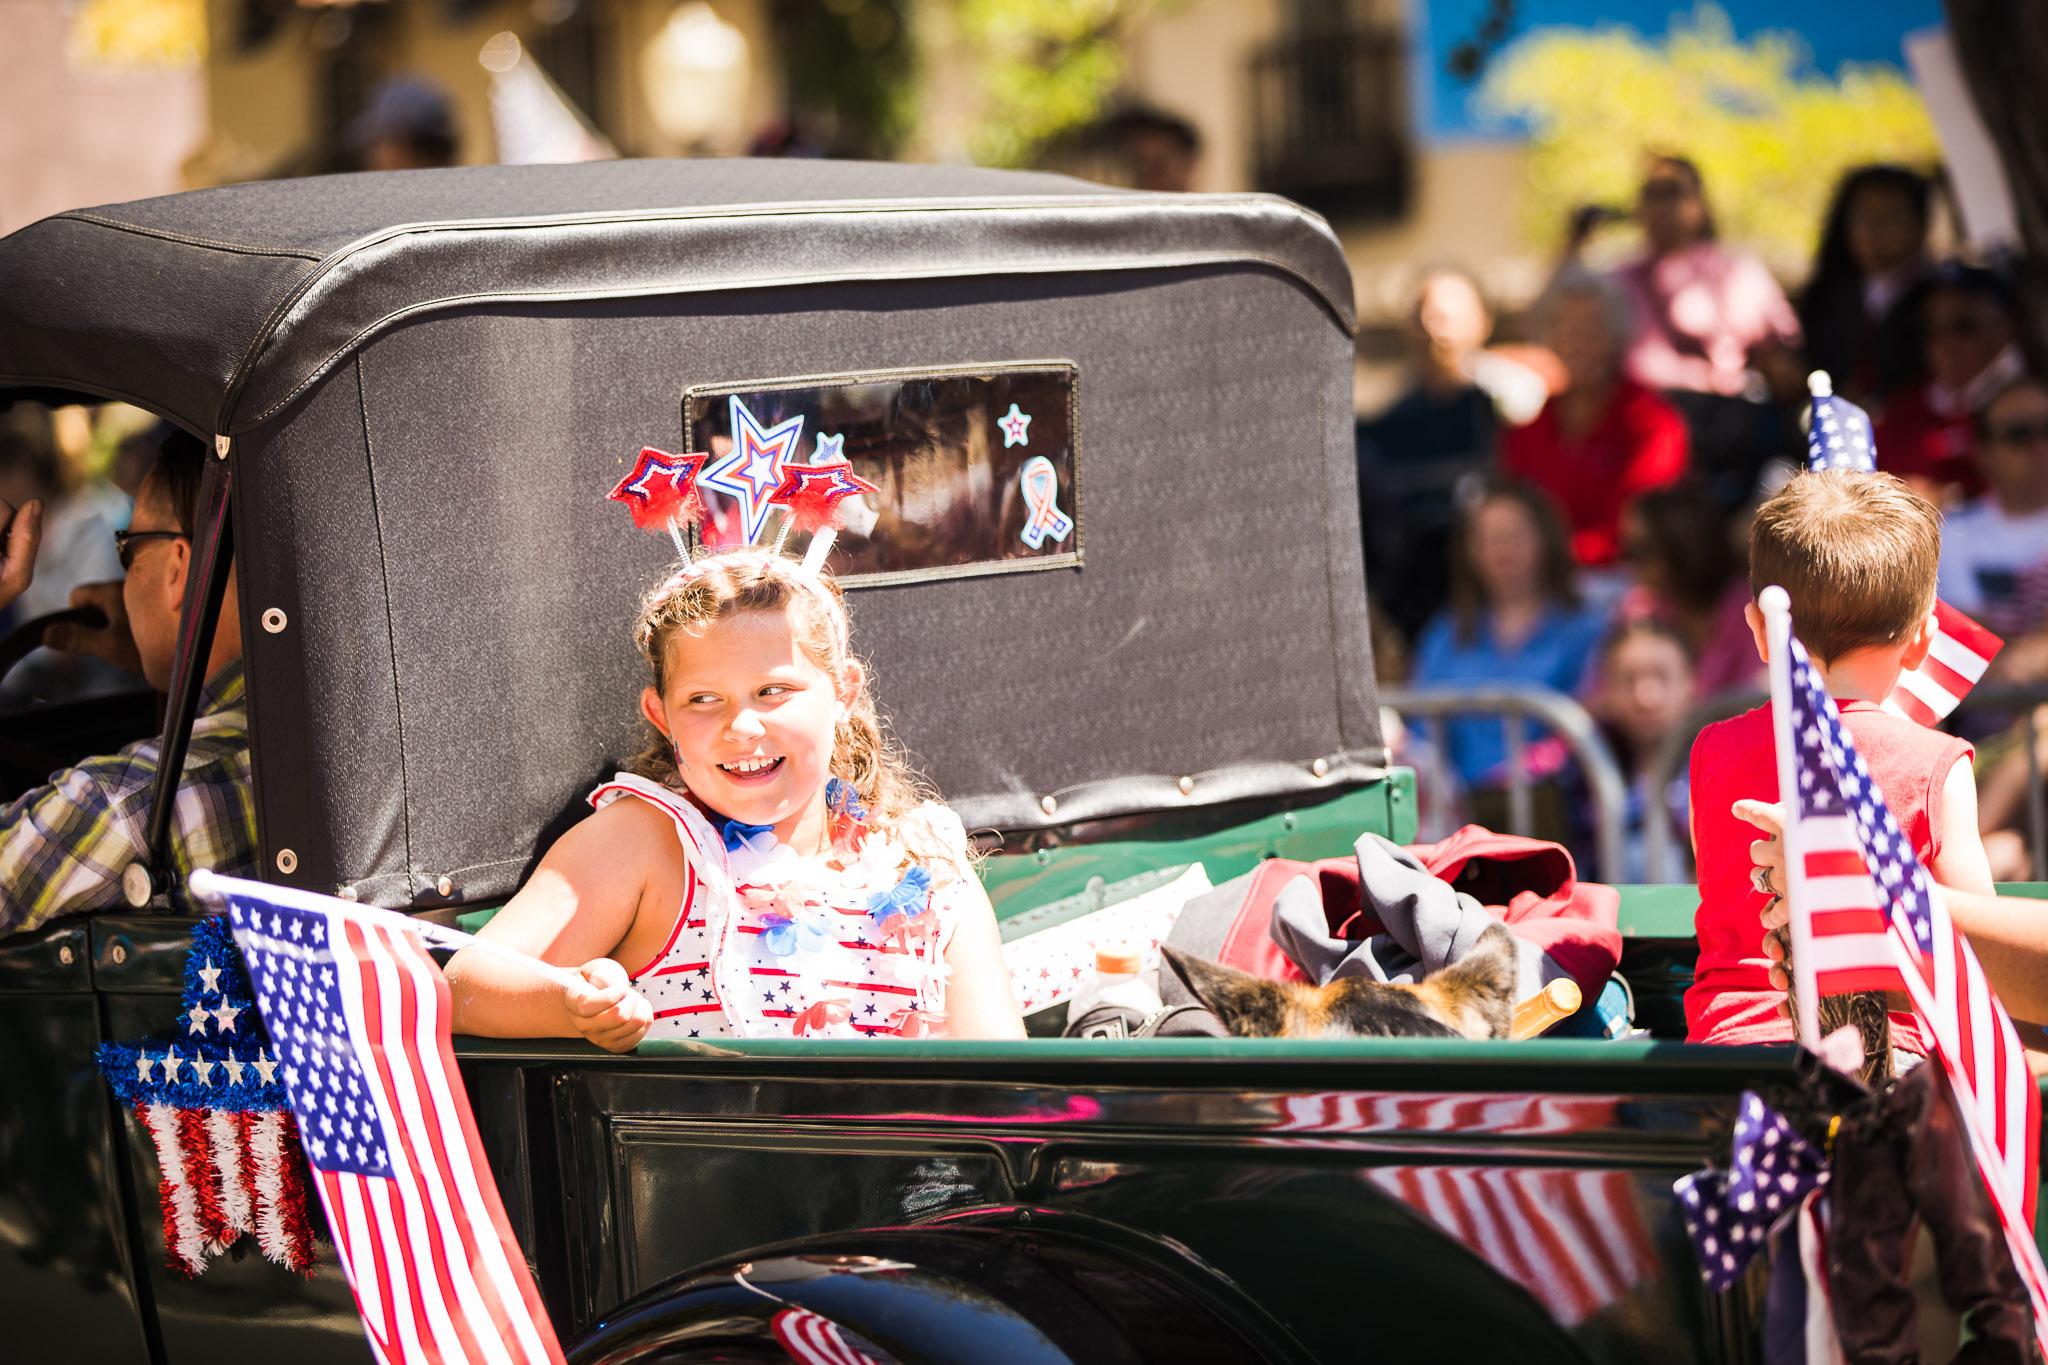 Archer_Inspired_Photography_Morgan_Hill_California_4th_of_july_parade-150.jpg